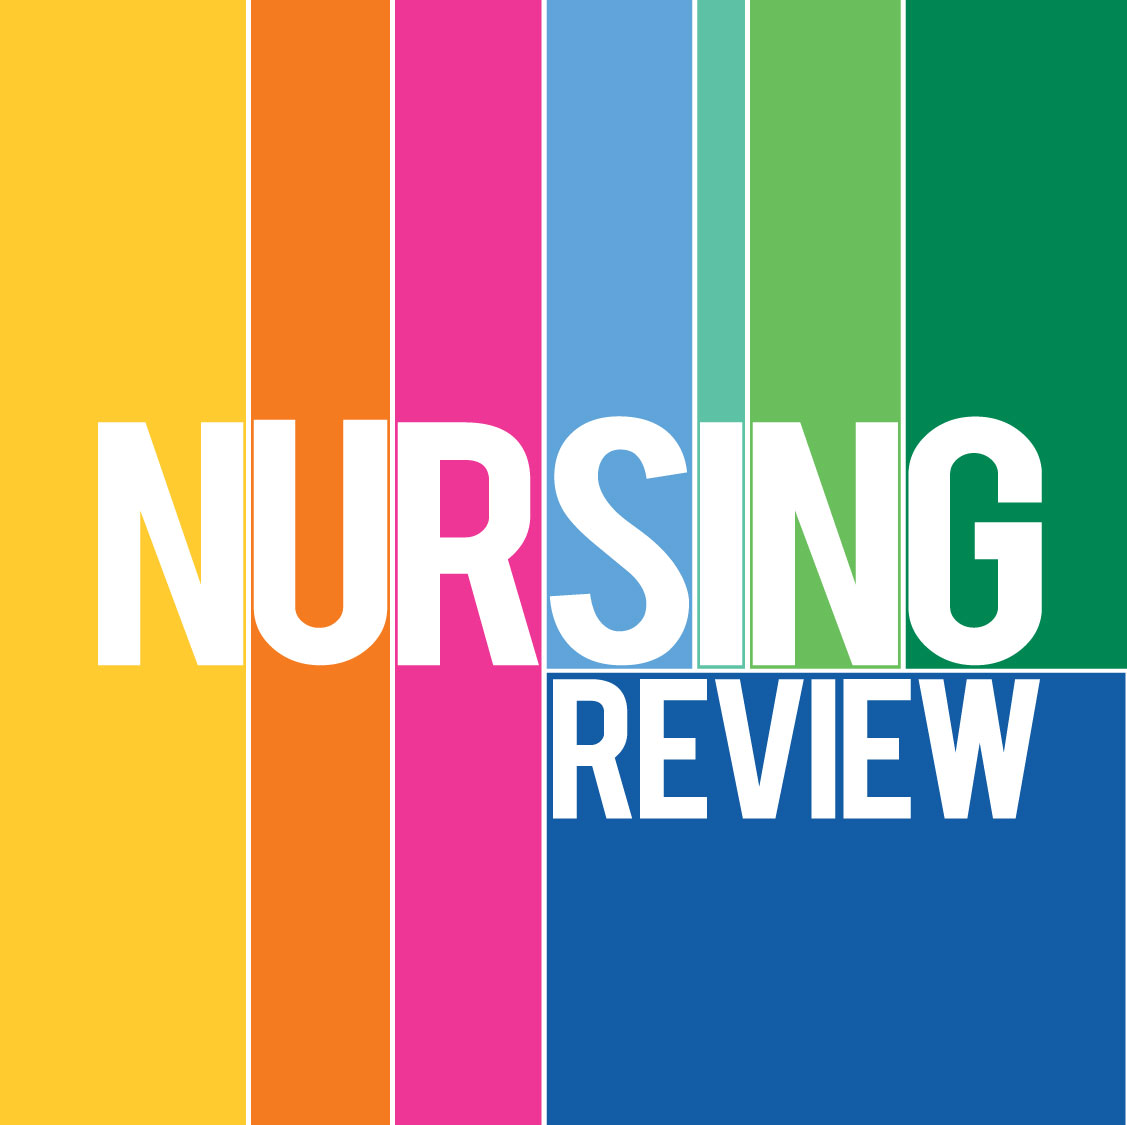 nursing review Nclex review: whether for use as a proven nclex review for the rn licensure examination, or as a databank containing over 2,000 nclex practice questions, this versatile product is a virtual database of information.